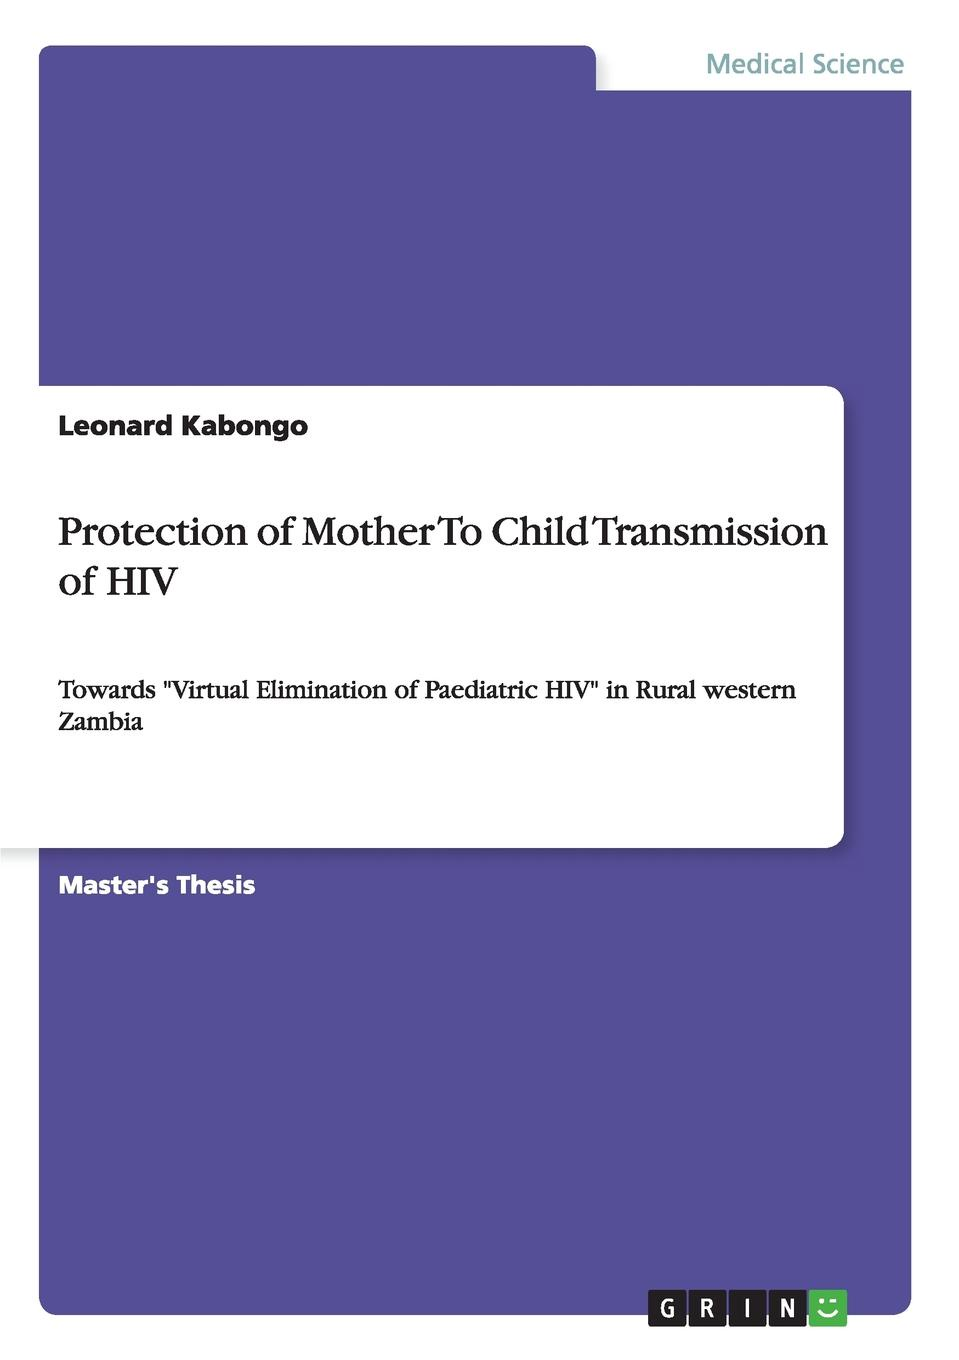 Leonard Kabongo Protection of Mother To Child Transmission of HIV cost effectiveness analysis of pmtct service delivery modalities